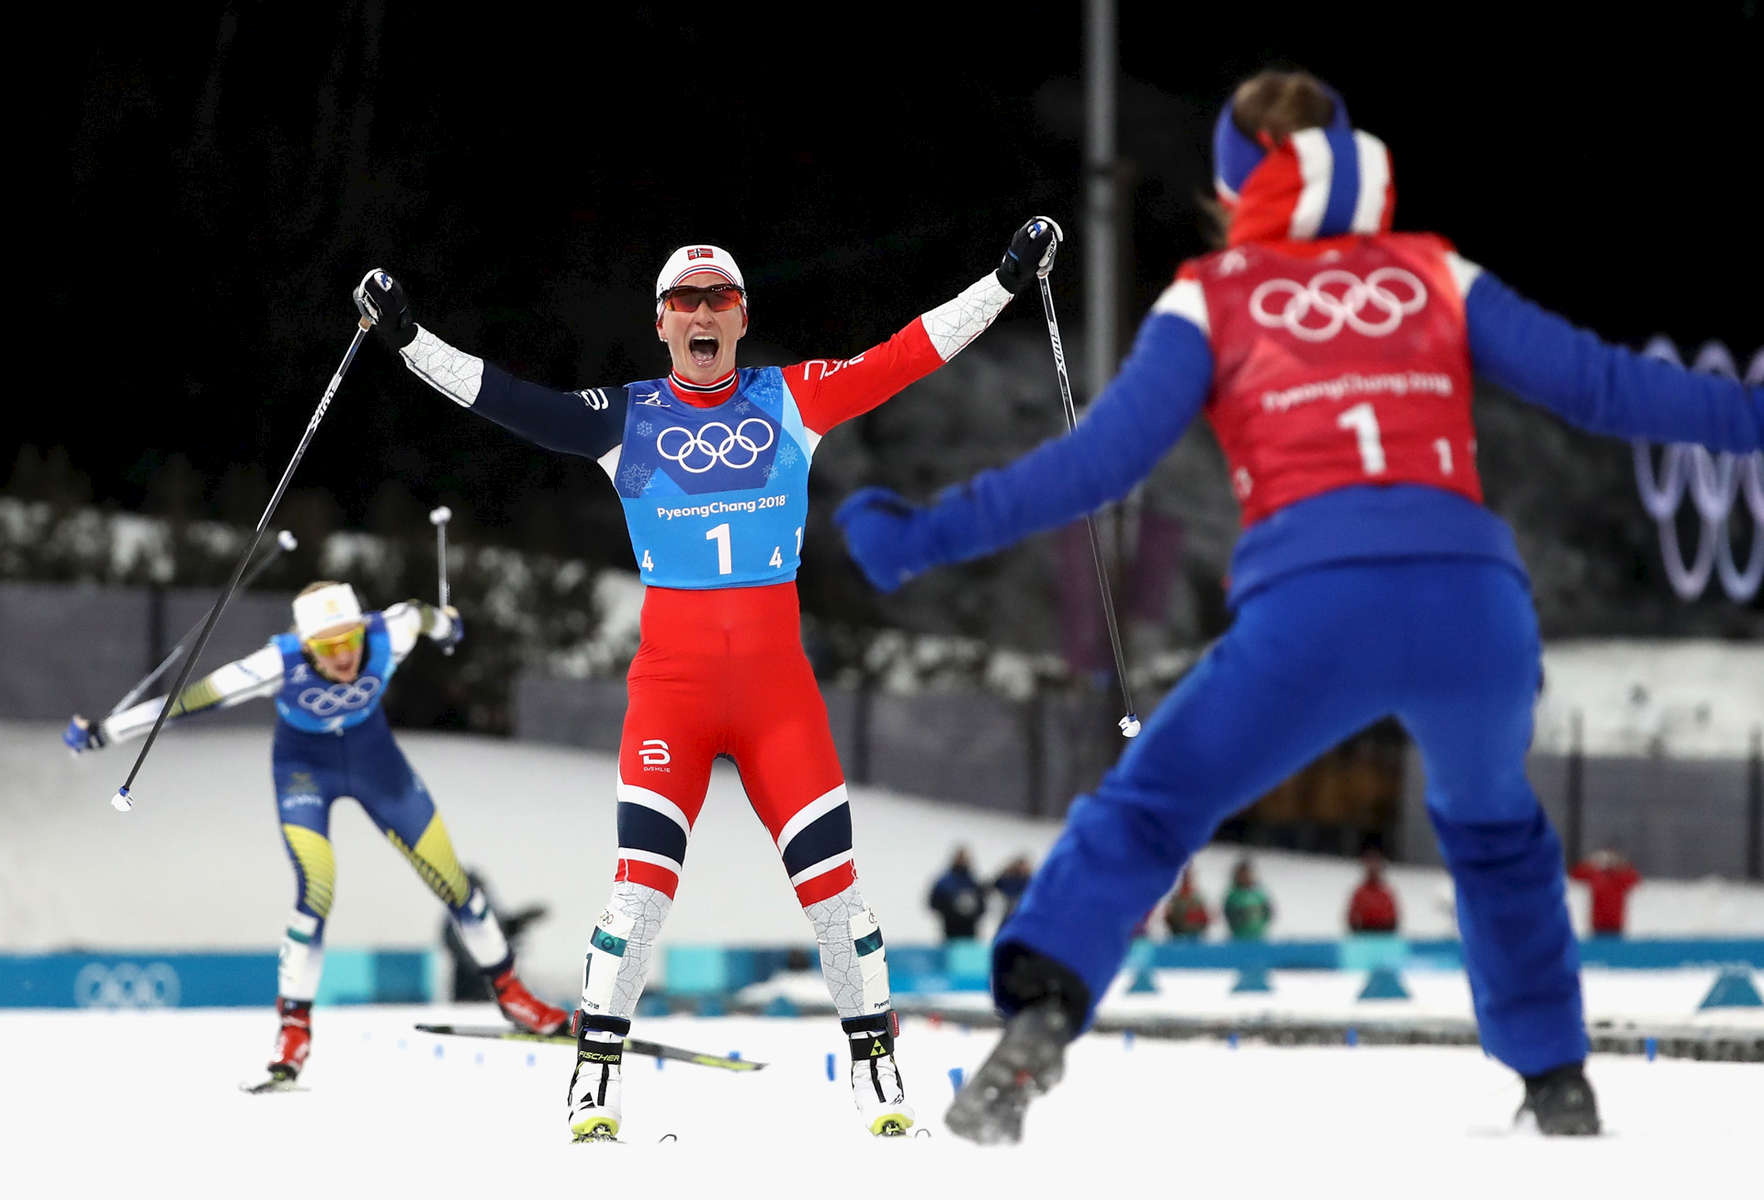 Marit Bjoergen of Norway (1-4) celebrates as she crosses the finish line to win gold with Ingvild Flugstad Oestberg of Norway (1-1) during the Ladies' 4x5km Relay on day eight of the PyeongChang 2018 Winter Olympic Games at Alpensia Cross-Country Centre on February 17, 2018 in Pyeongchang-gun, South Korea.